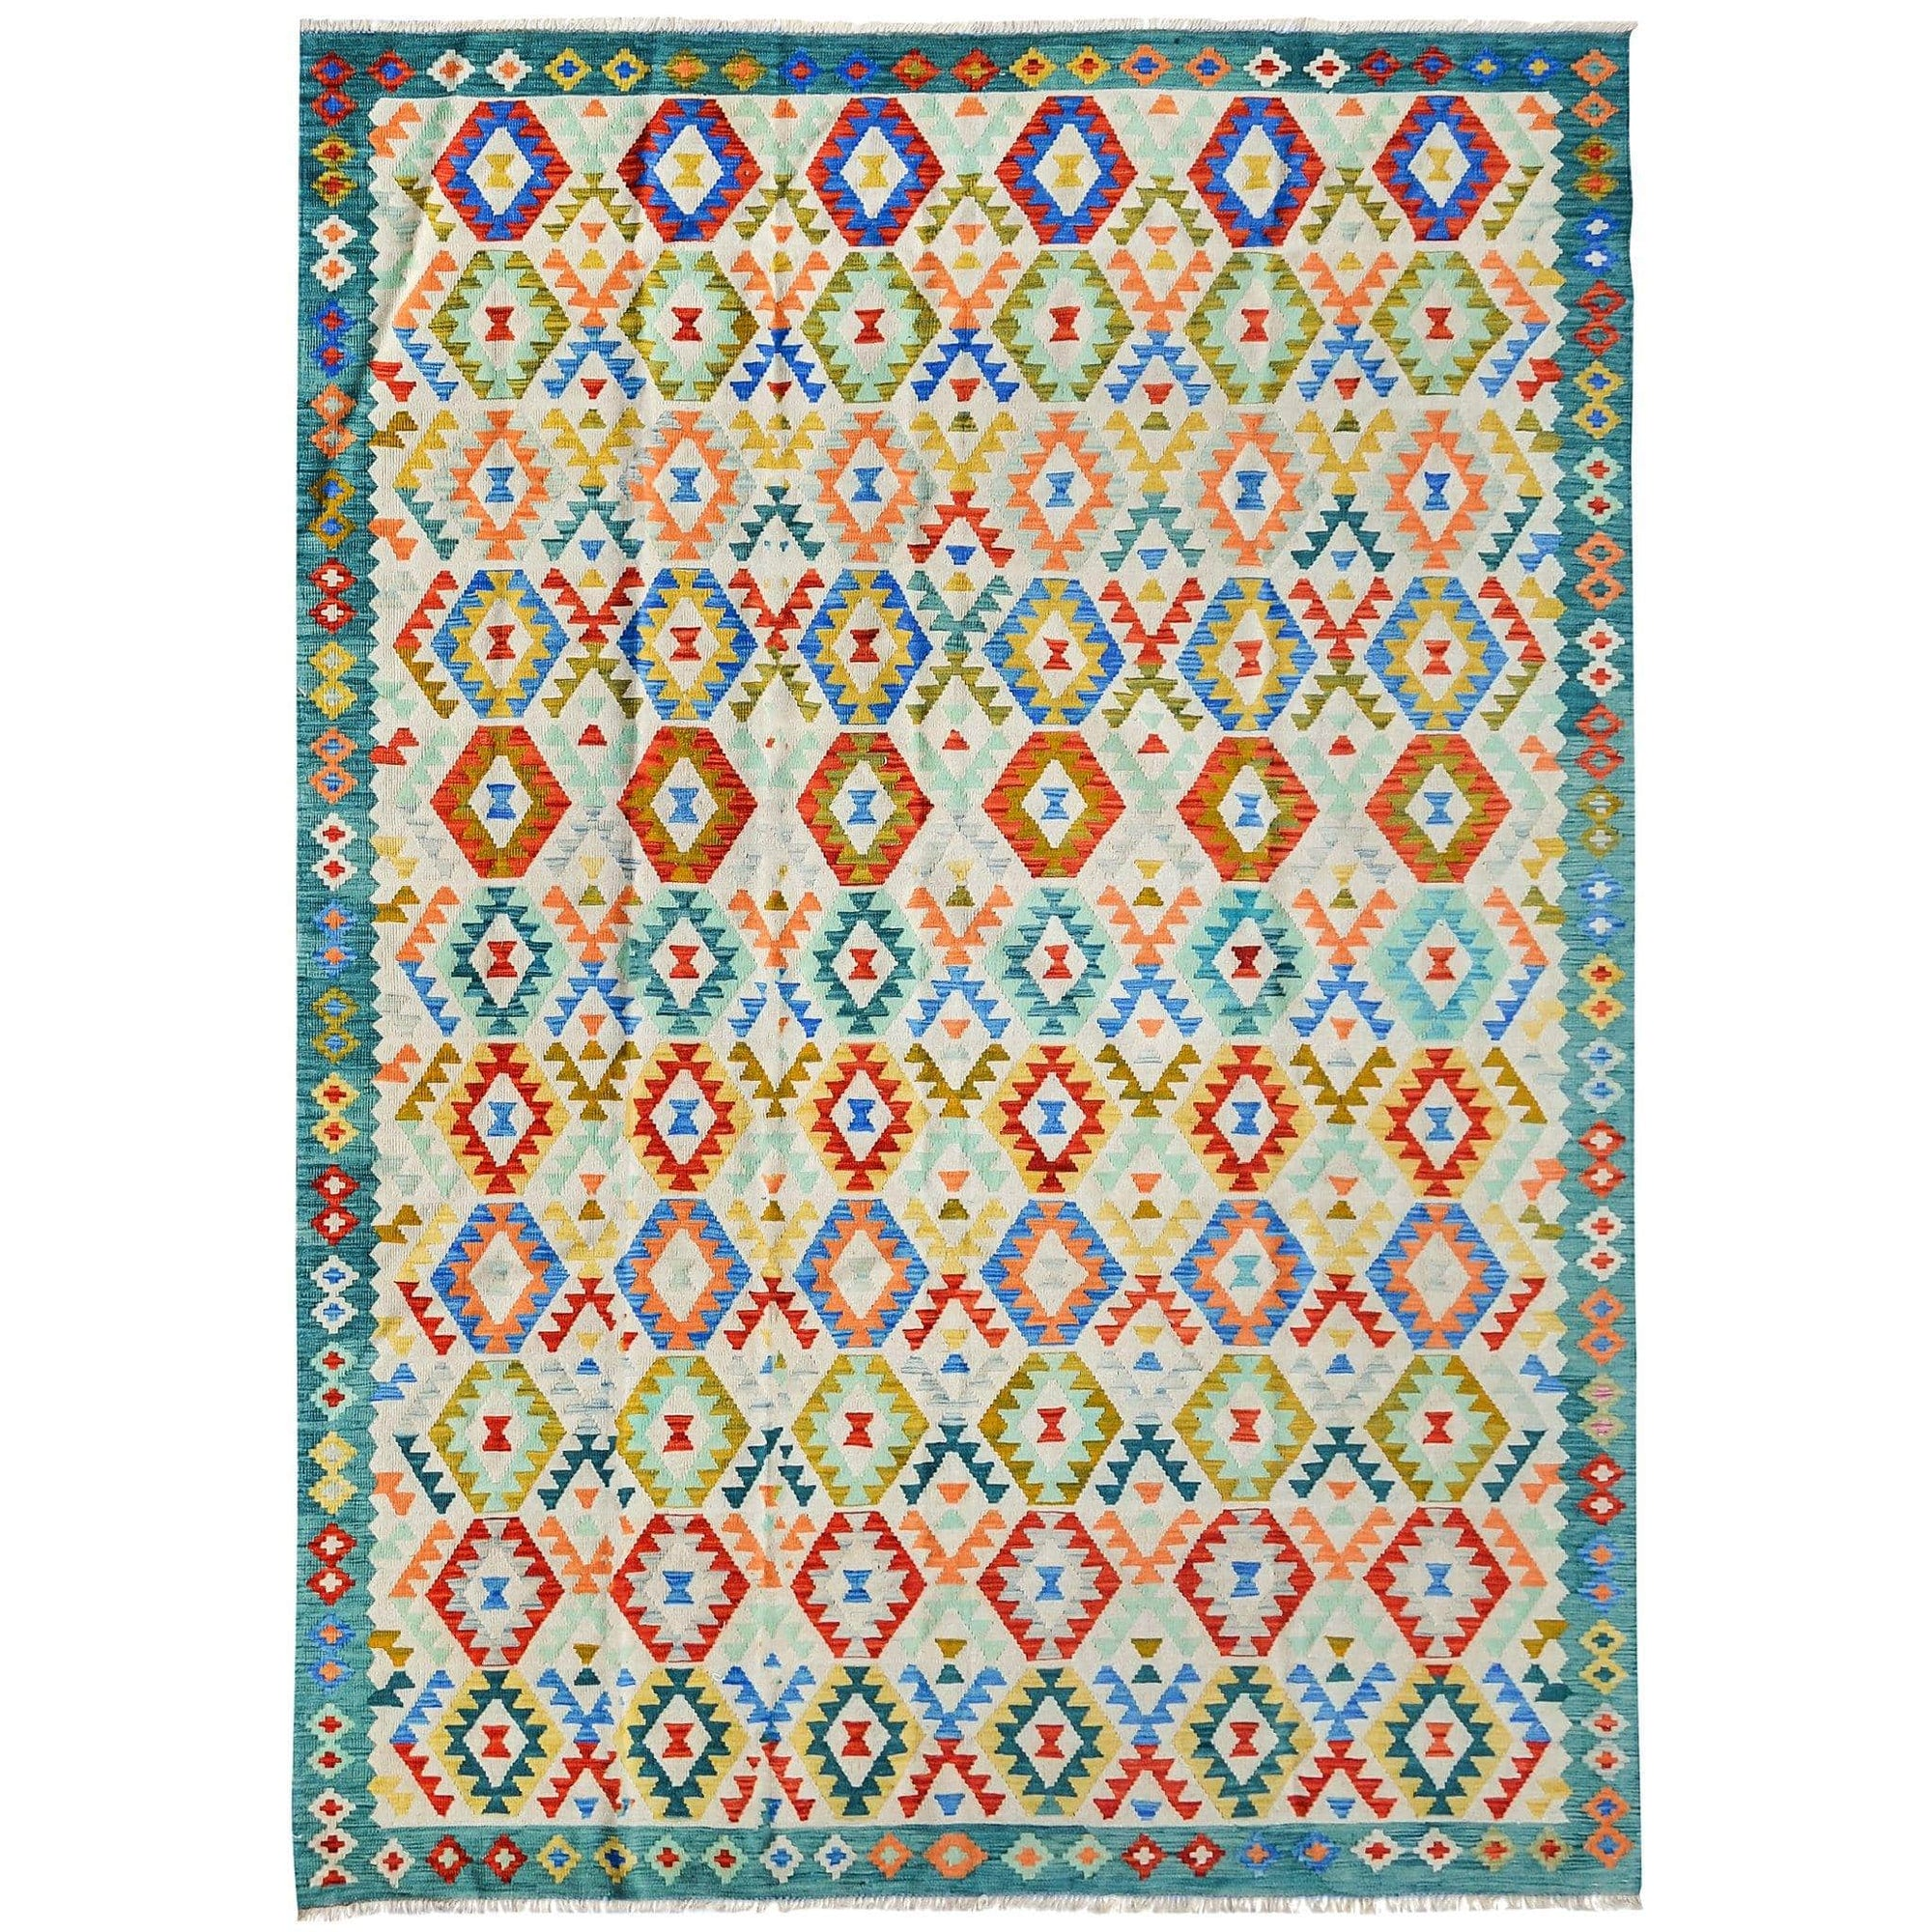 Large Modern Hand-woven Wool Chobi Kilim Rug 252cm x 337cm Persian-Rug | House-of-Haghi | NewMarket | Auckland | NZ | Handmade Persian Rugs | Hand Knotted Persian Rugs